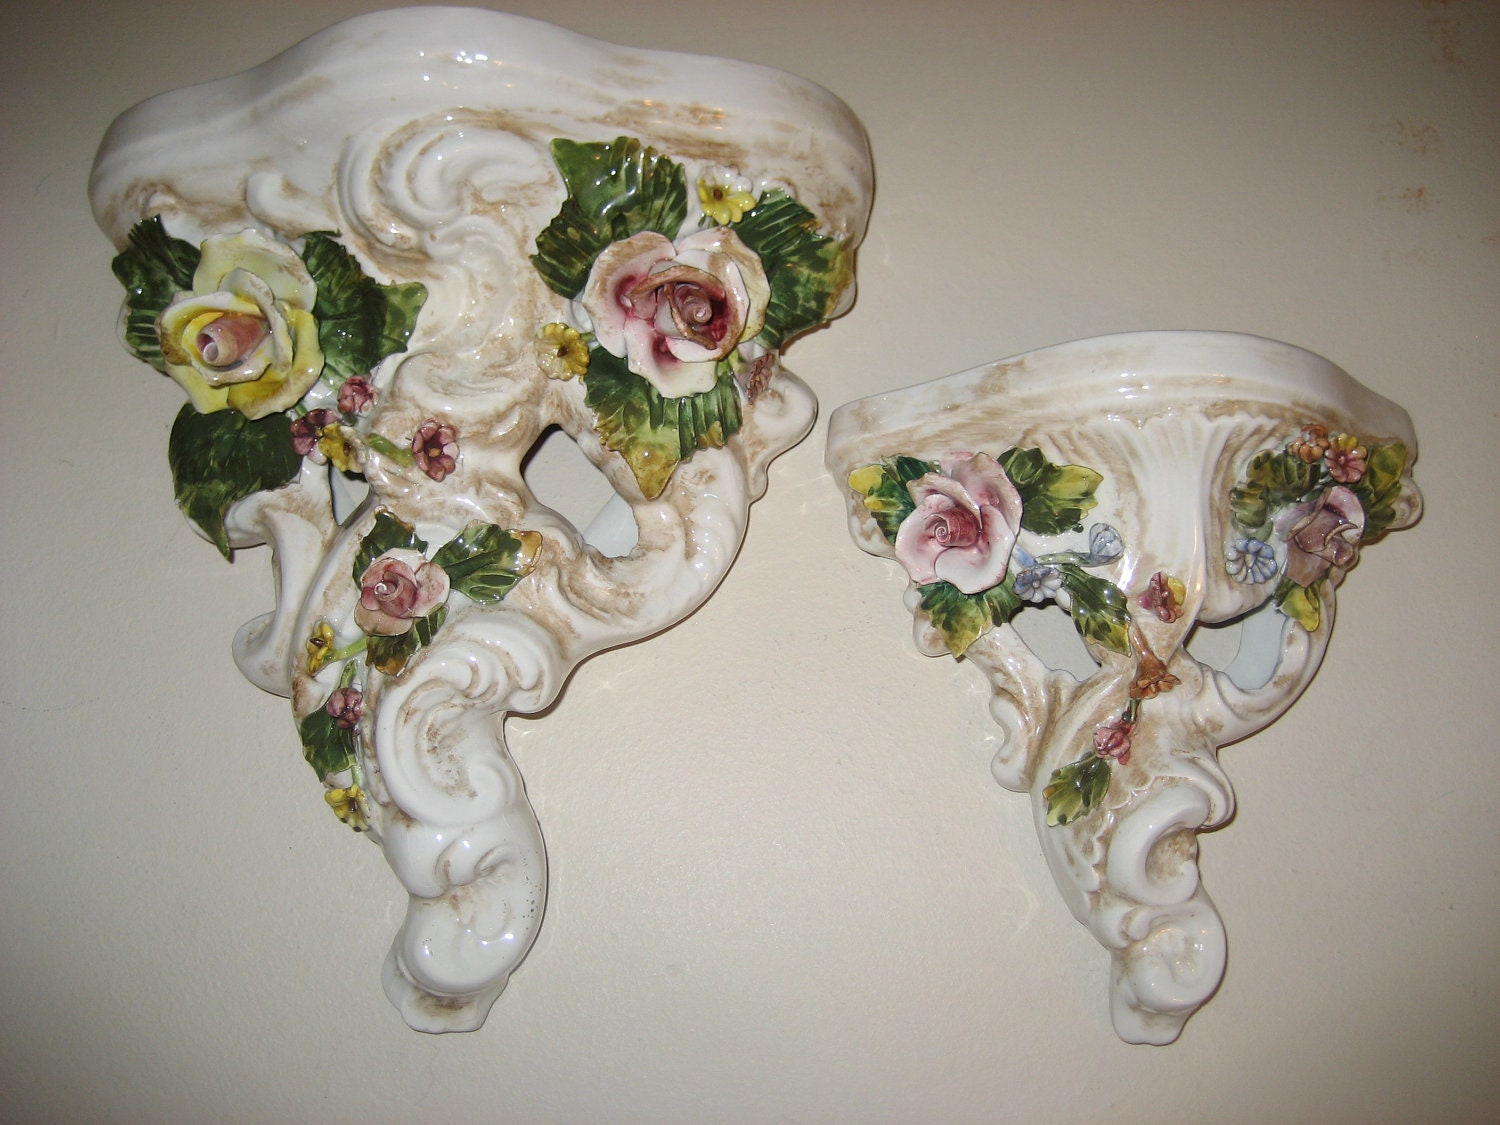 Italian Ceramic Wall Sconces : Vintage Italy Italian Ceramic Wall Sconce by GoodysFromThePast